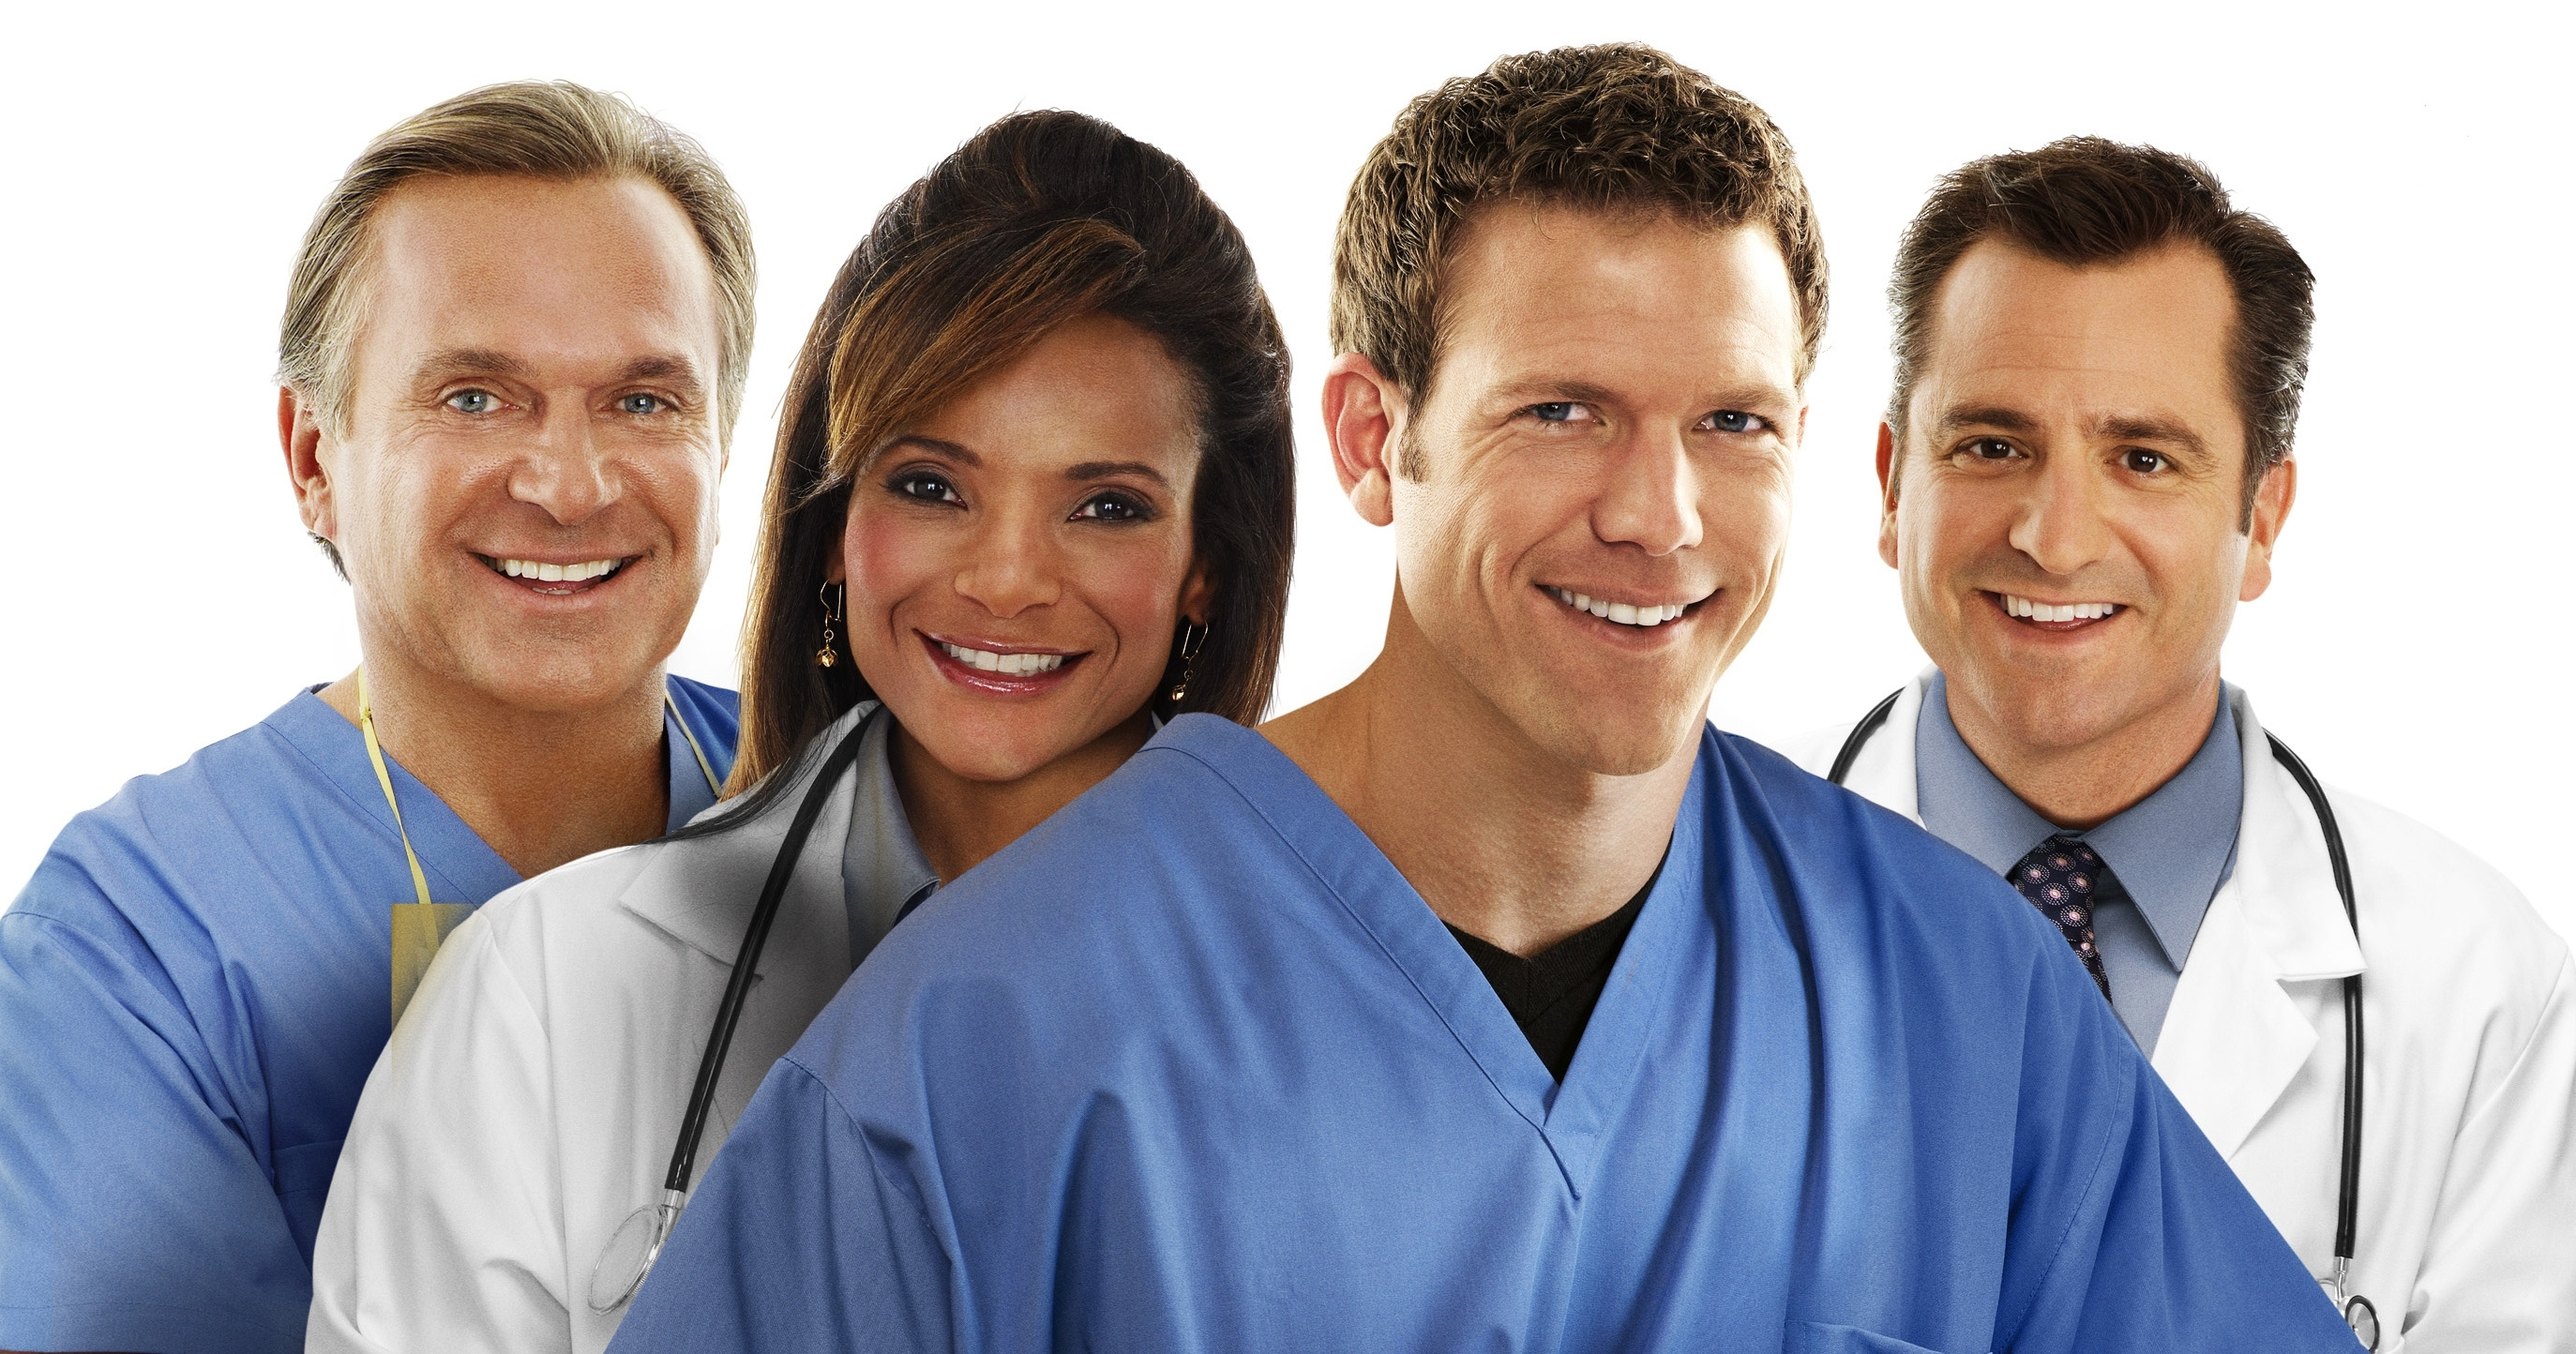 left to right: Dr. Jim Sears, Dr. Lisa Masterson, Dr. Travis Stork, Dr